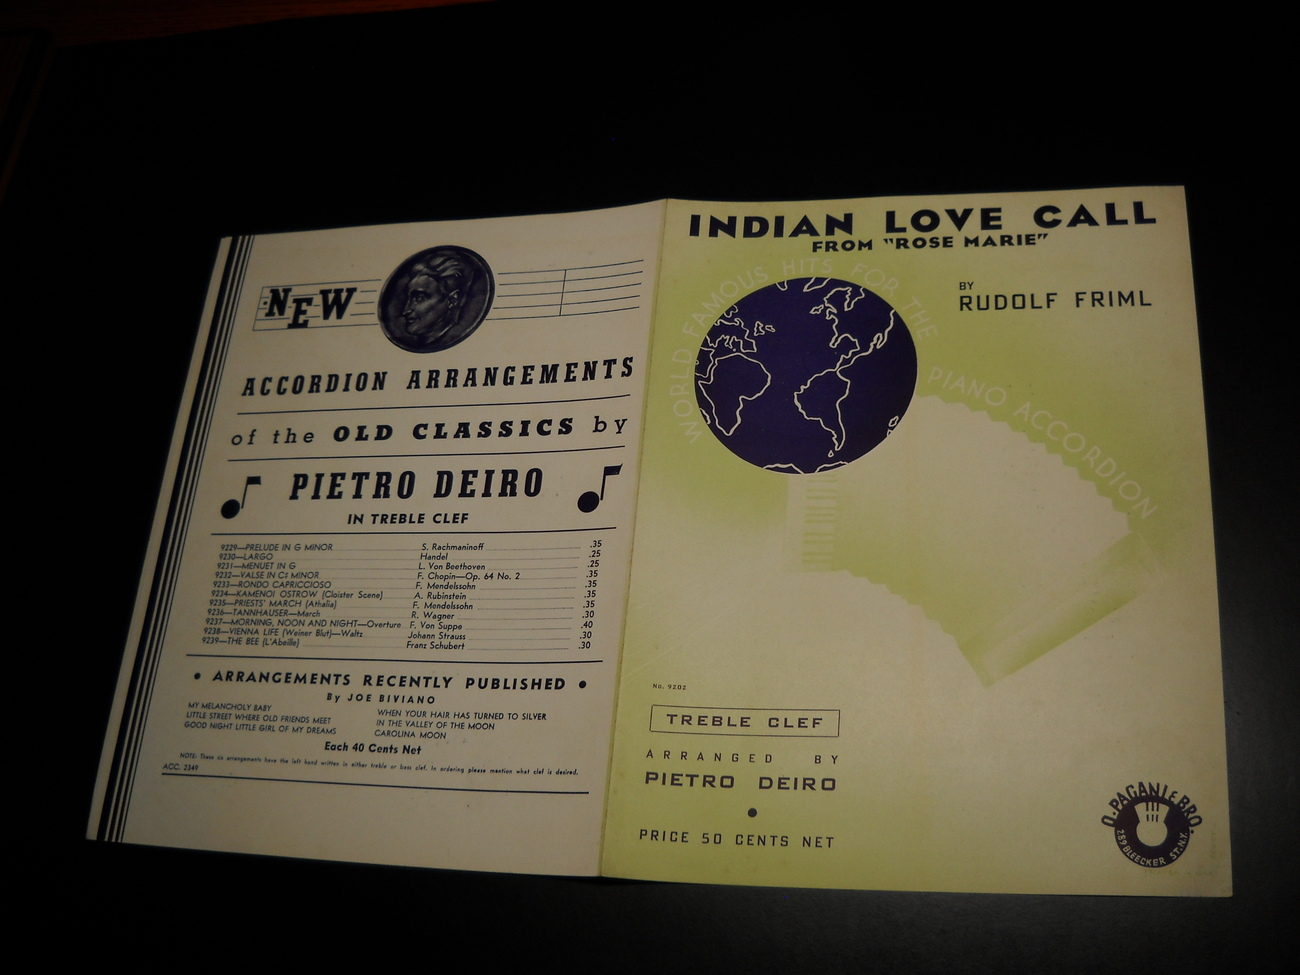 Sheet_music_indian_love_call_rose_marie_rudolf_friml_1924_o_pagani___bro_music_04